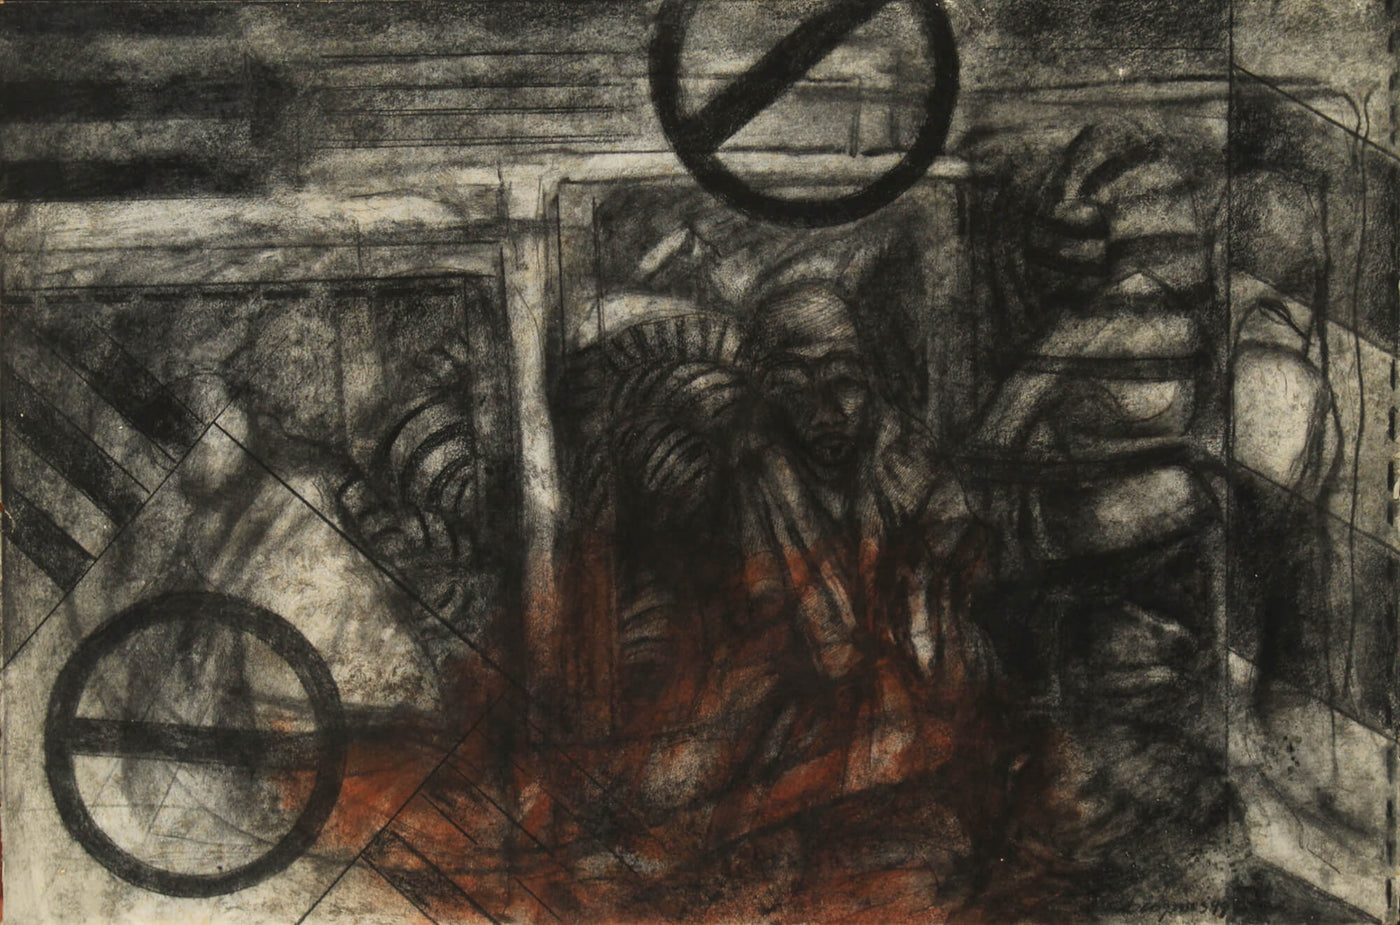 Drawing with carbon and sepia about elements of the metro by Diógenes Ballester.